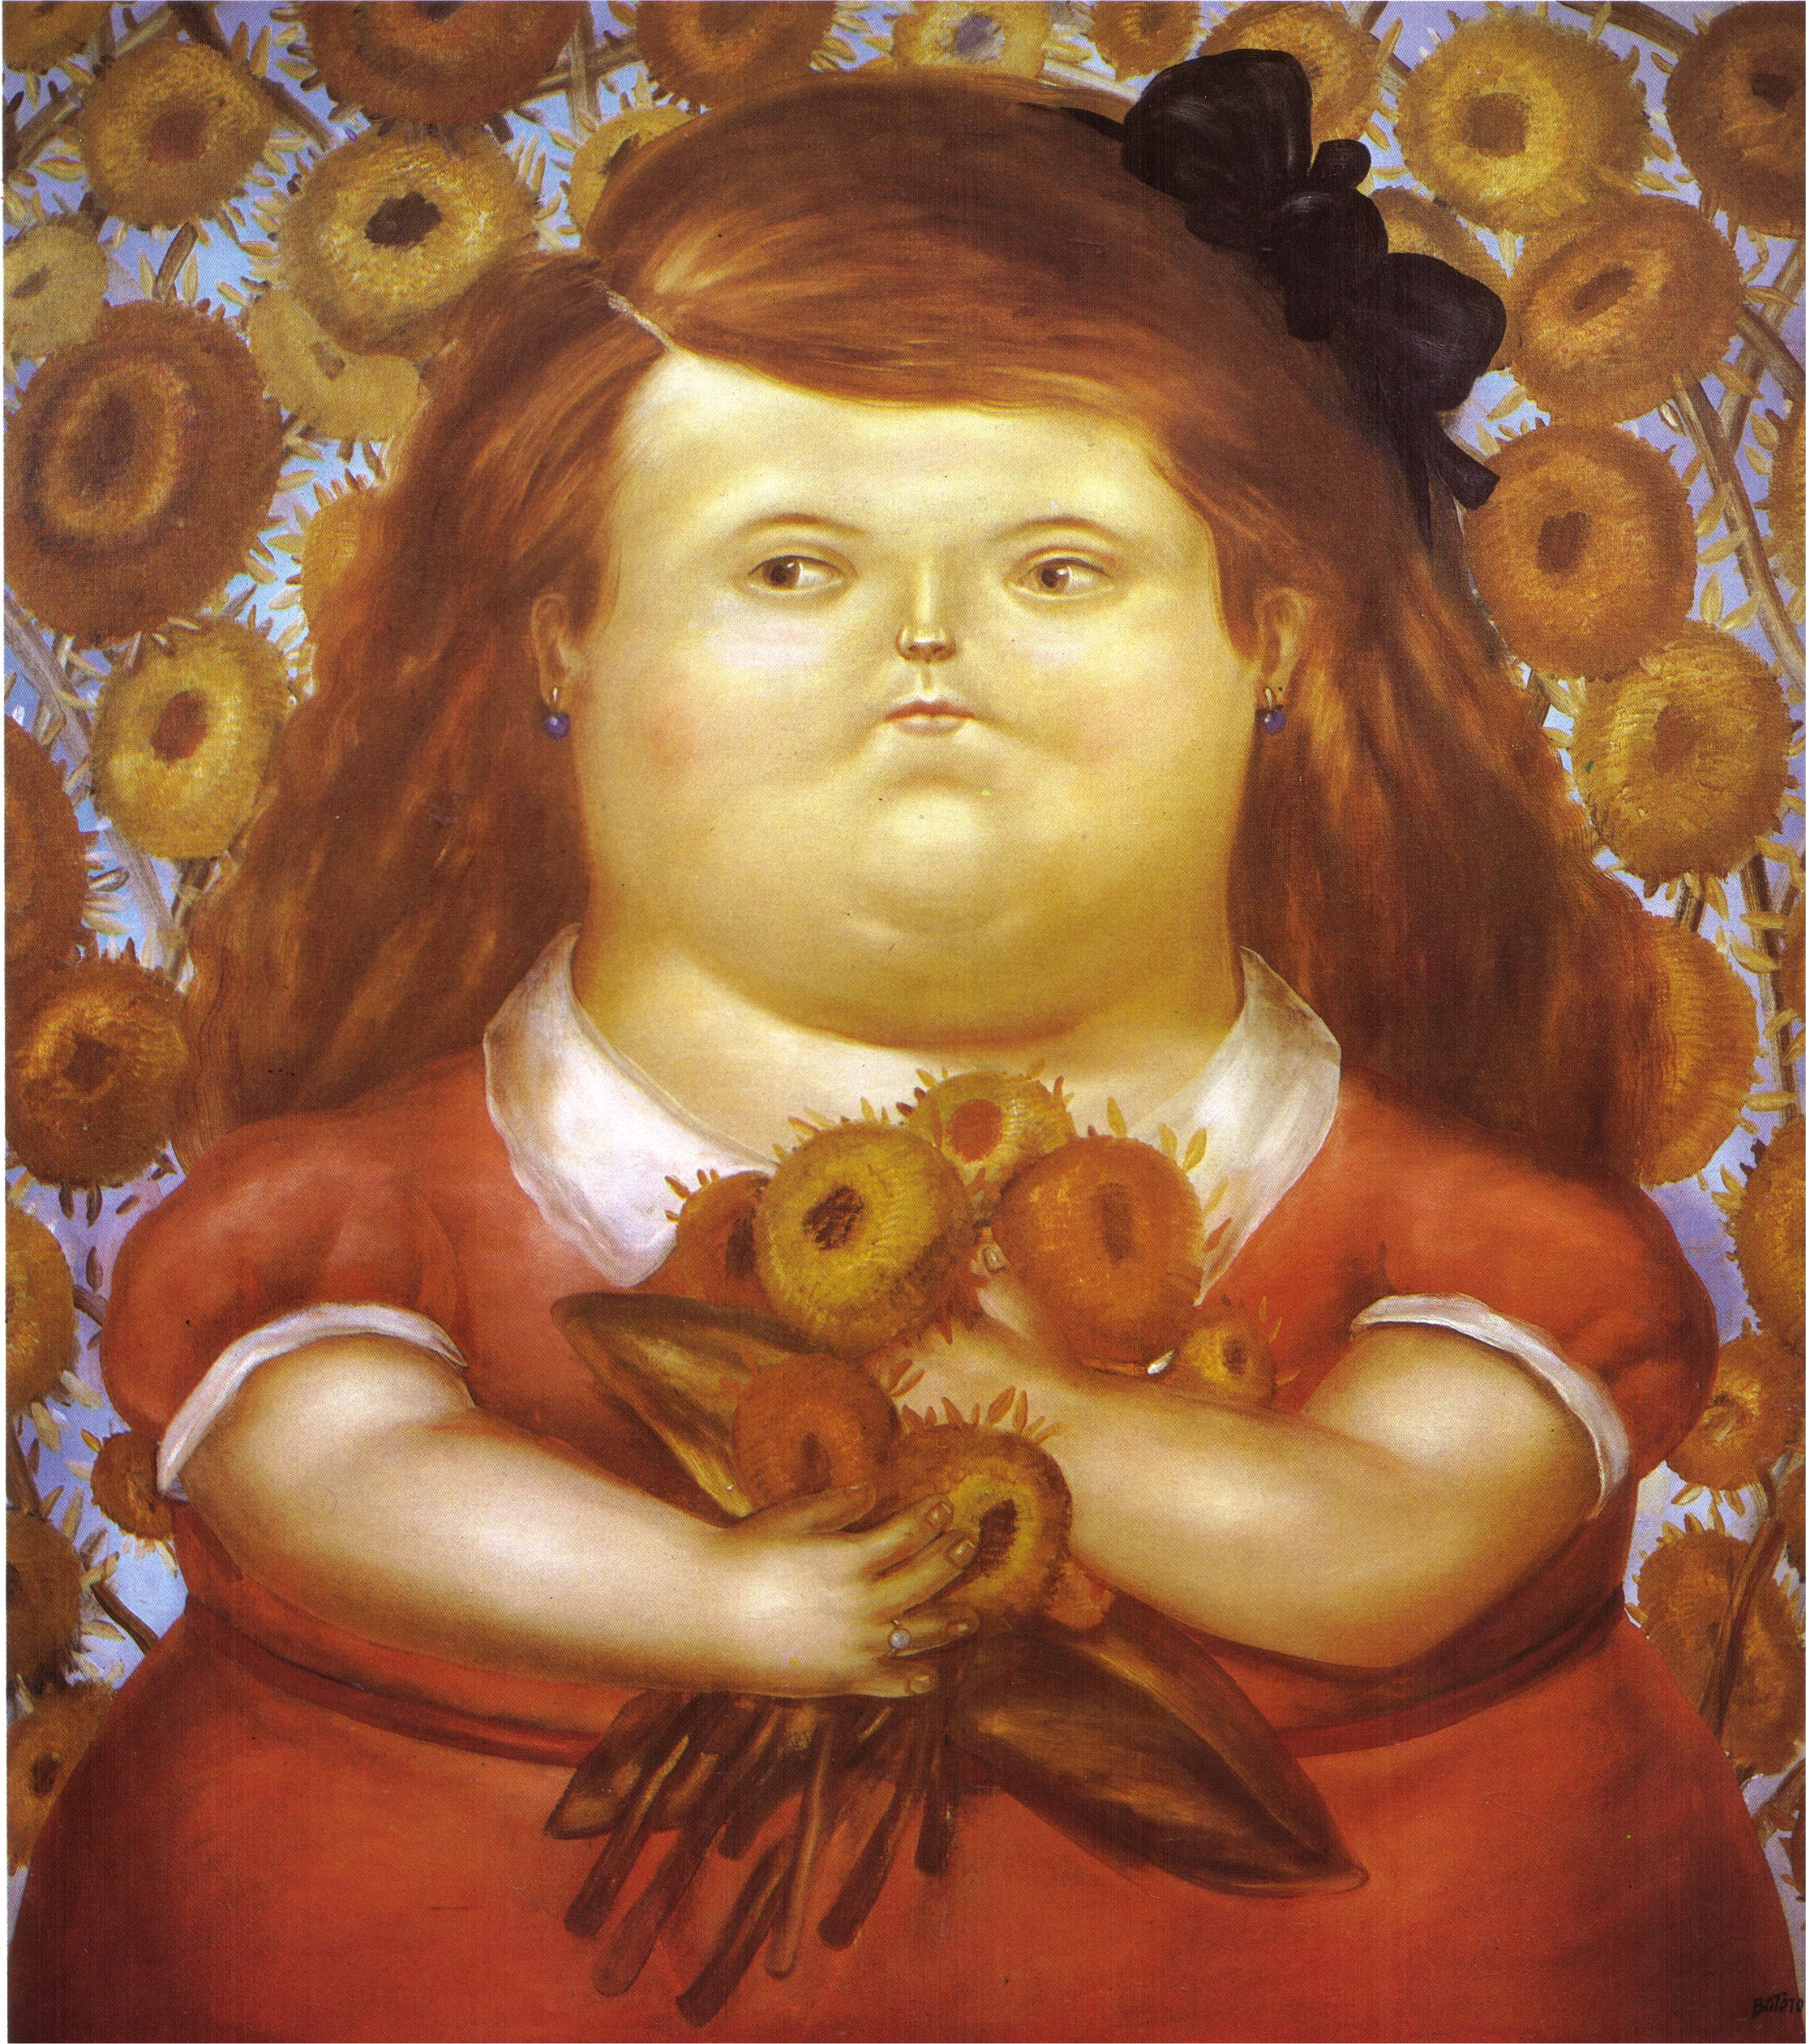 Populaire Woman with Flowers, 1976 - Fernando Botero - WikiArt.org GU85